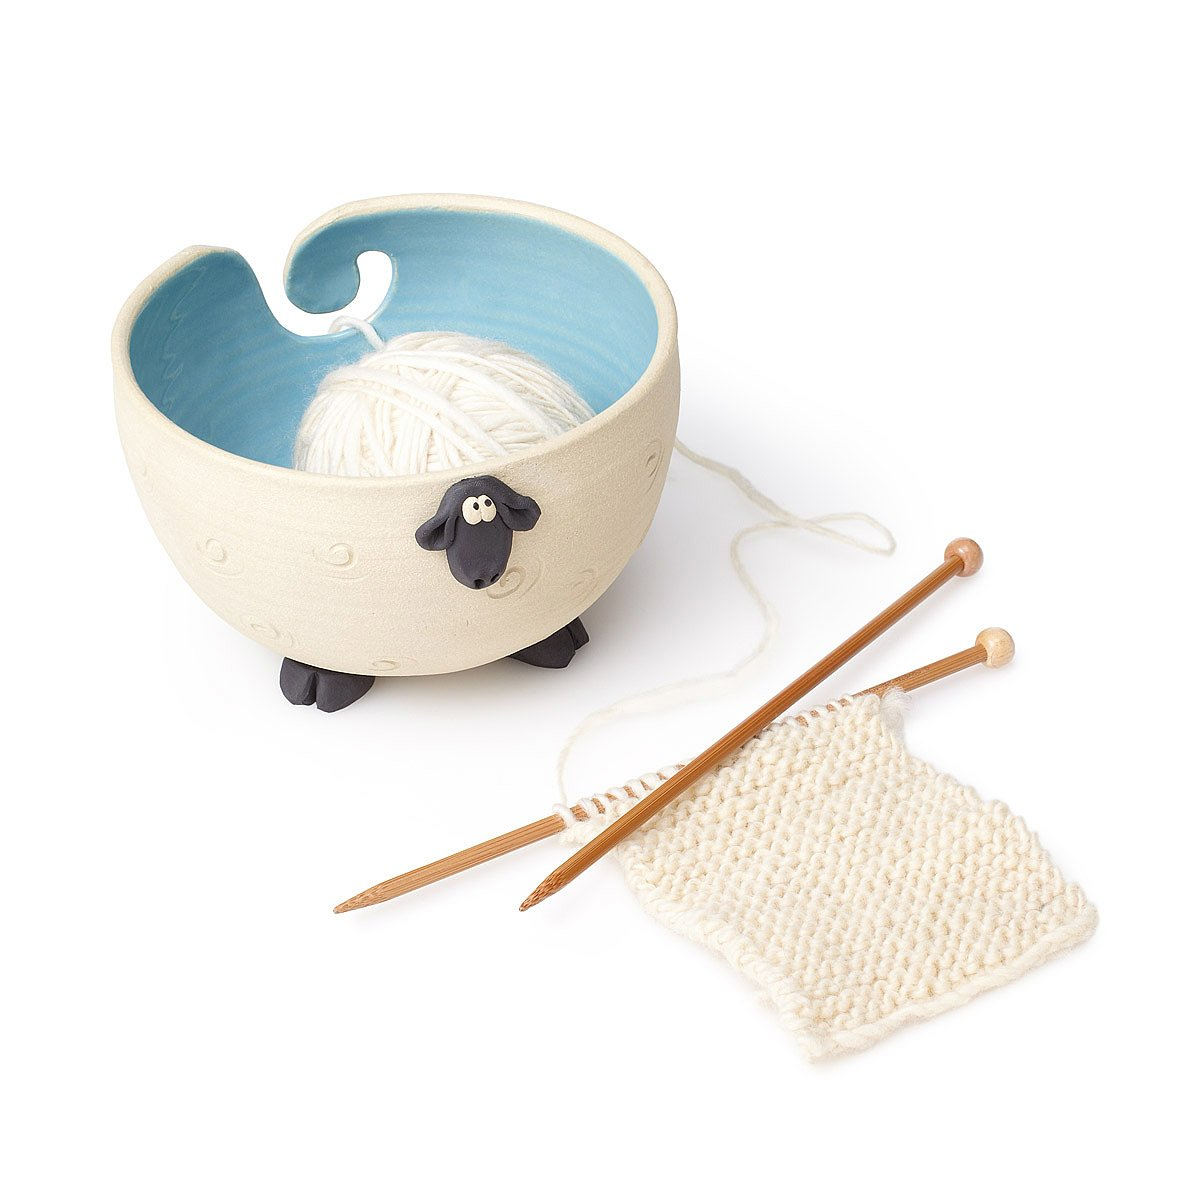 Knitting Accessories : ... Sheep Yarn Bowl knitting accessories, yarn keeper UncommonGoods